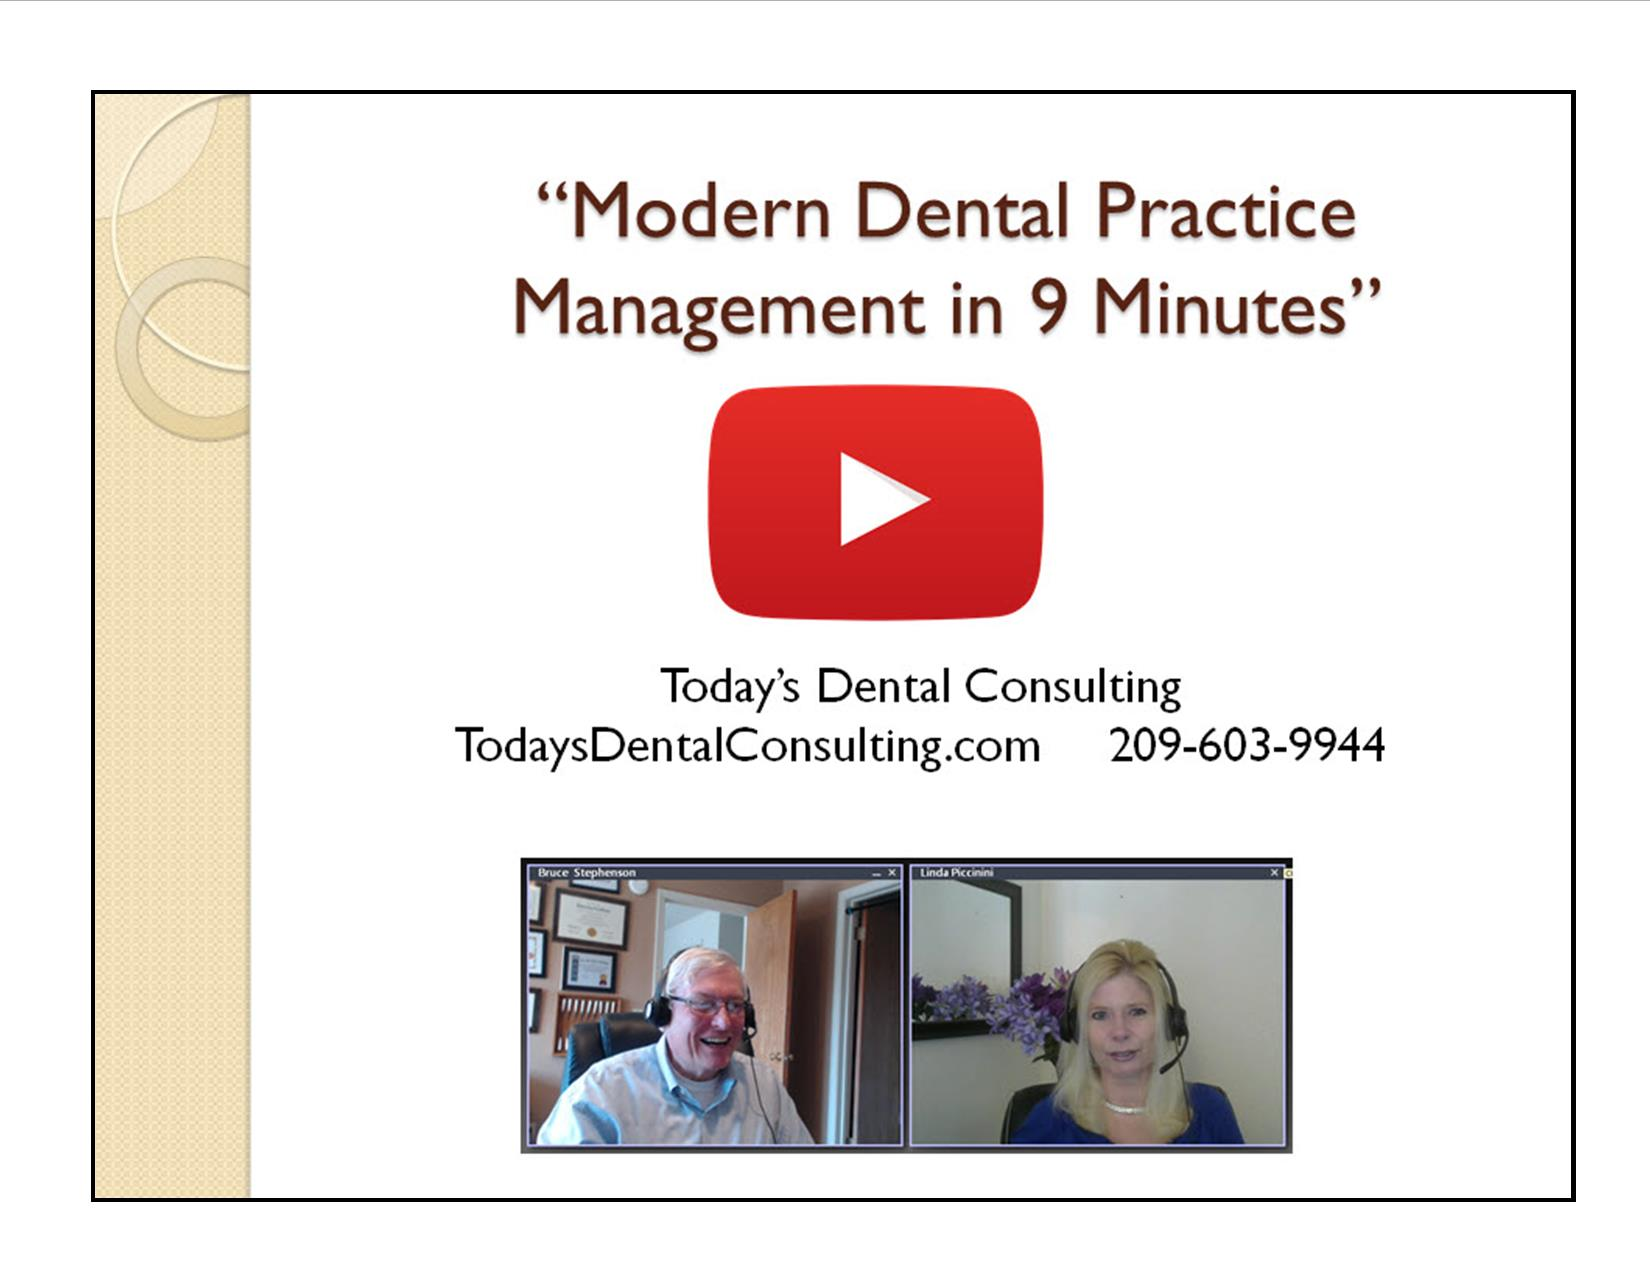 Modern Dental Practice Management in 9 Minutes